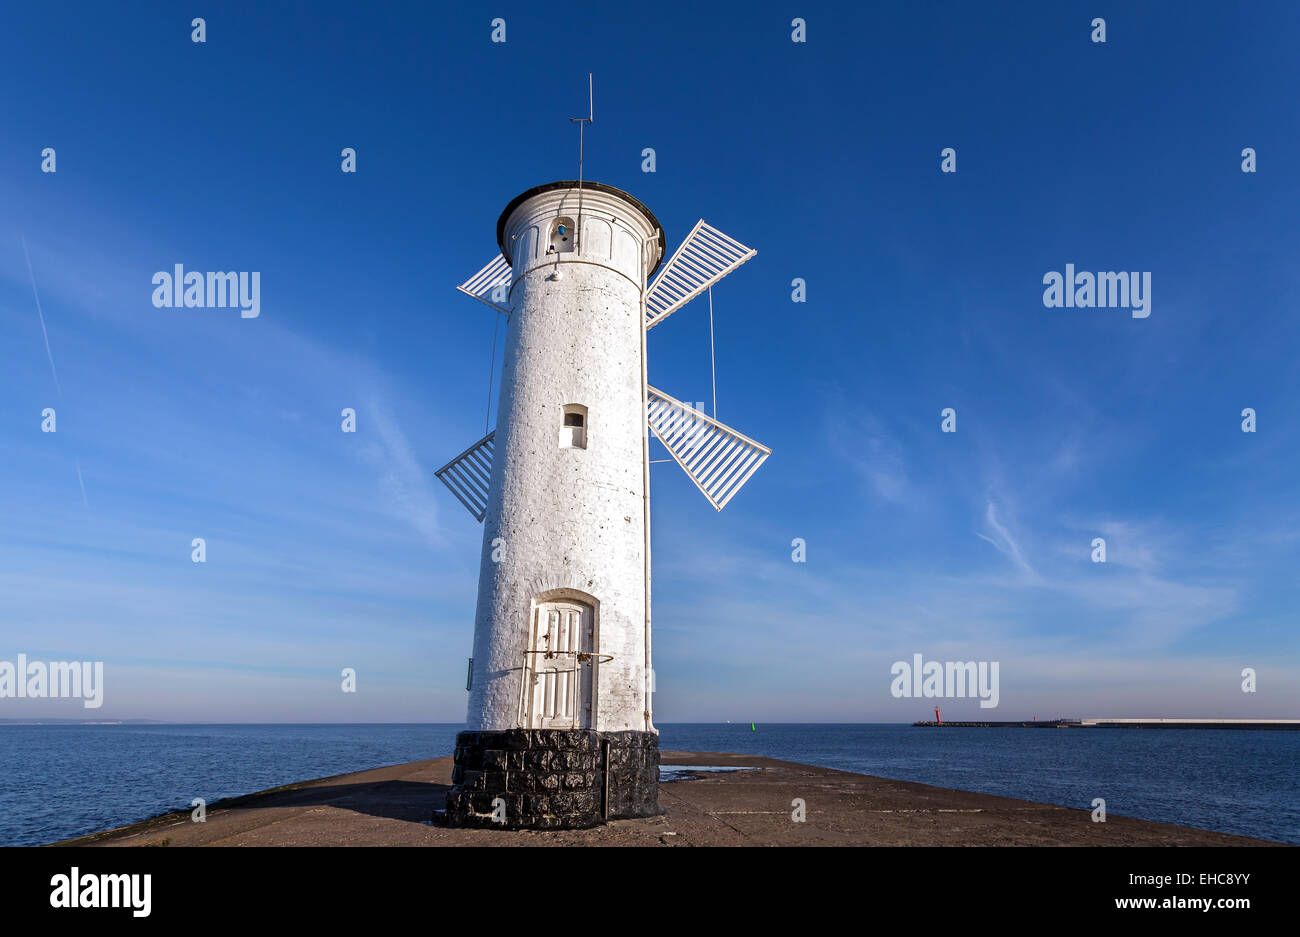 Old windmill lighthouse in Swinoujscie, Poland. - Stock Image